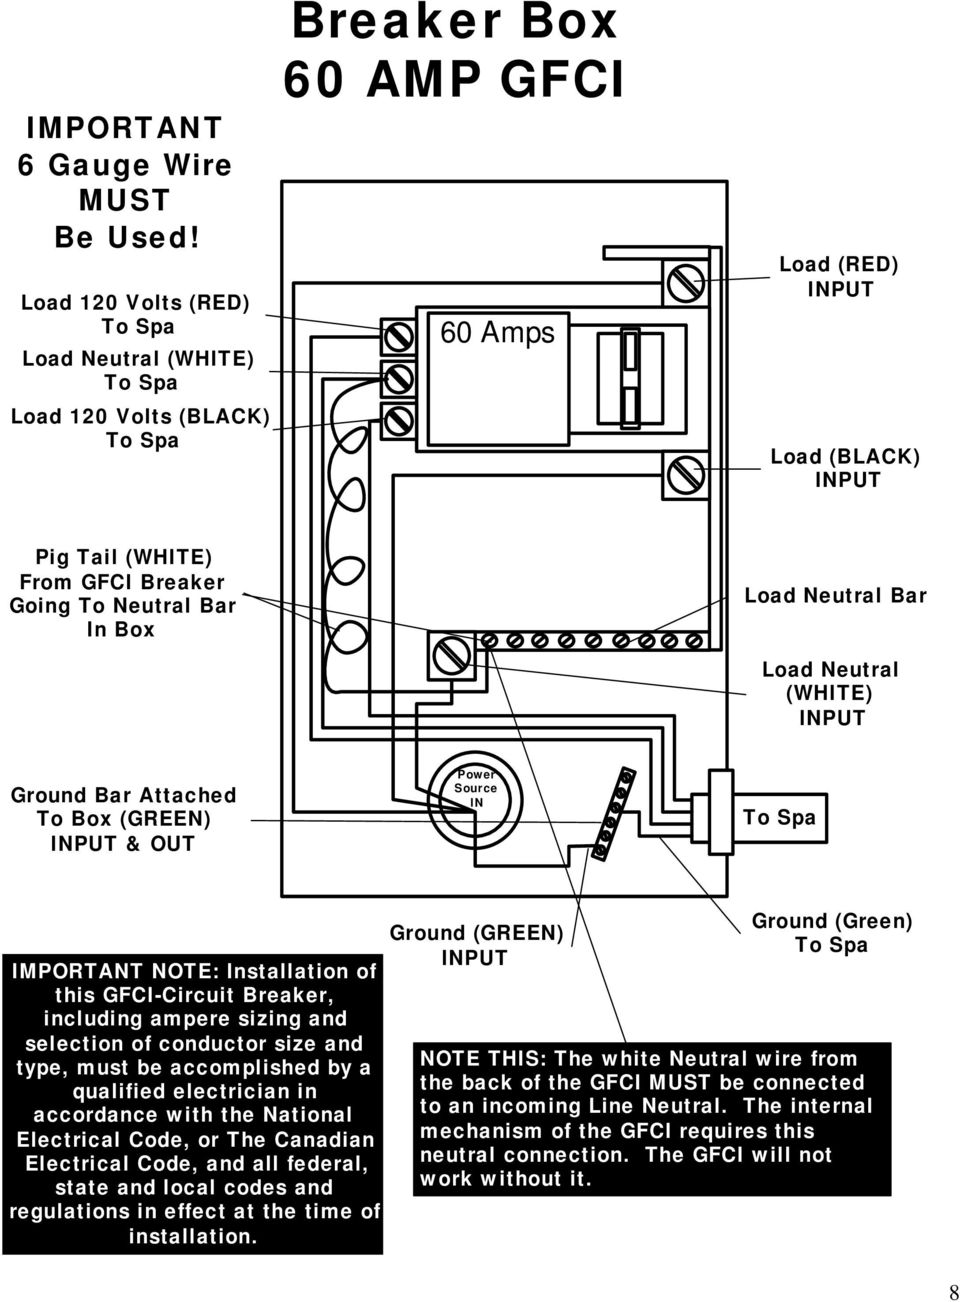 Cool Nights Series Owner S Manual Pdf Ground Fault Breaker Wiring Diagram For Spas Neutral Bar In Box Load White Input Attached